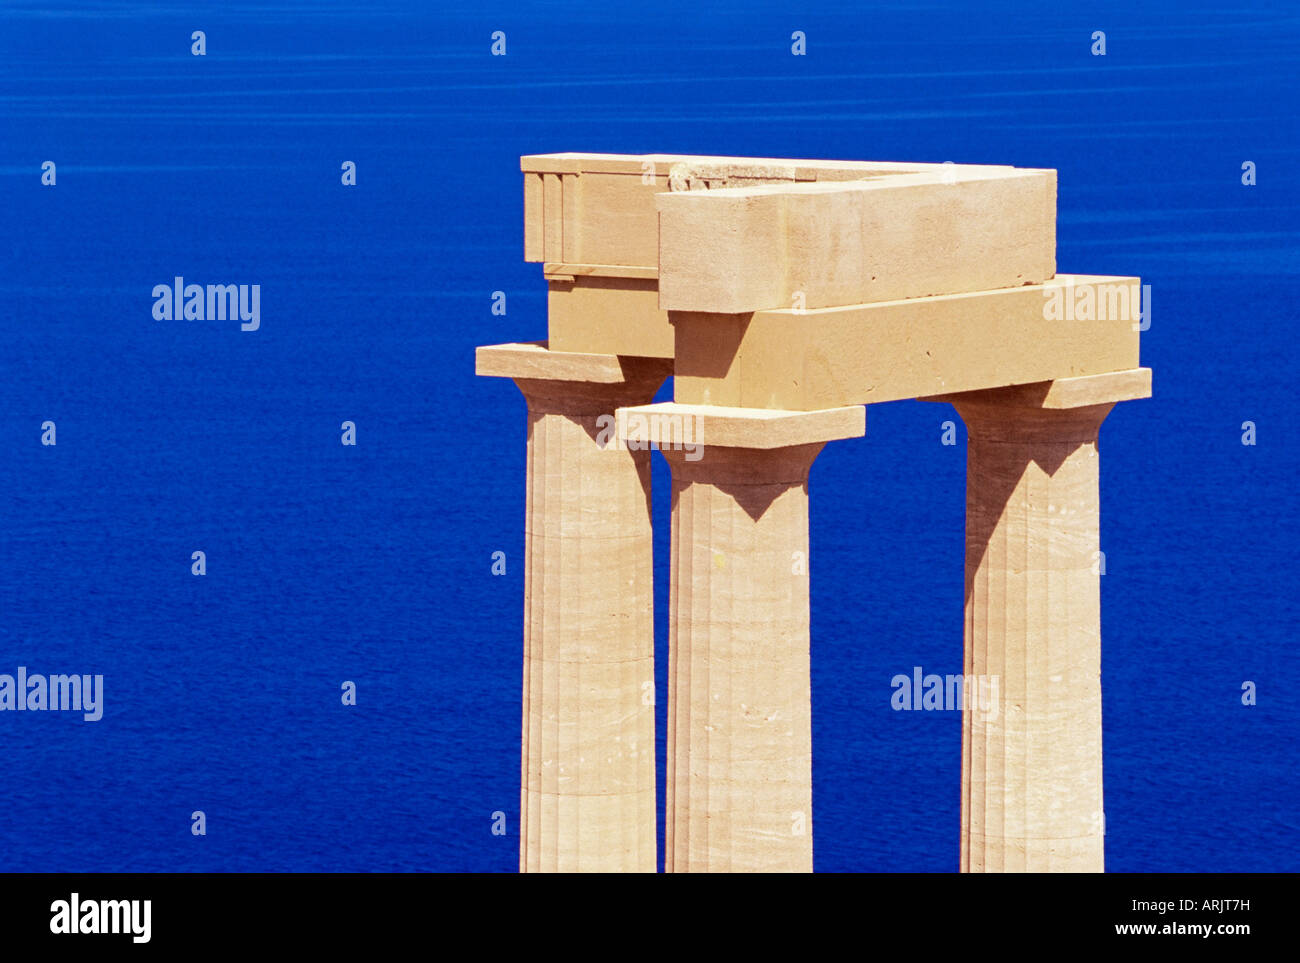 Detail of Hellenistic stoa, Acropolis of Lindos, island of Rhodes, Dodecanese, Greek Islands, Greece, Europe - Stock Image